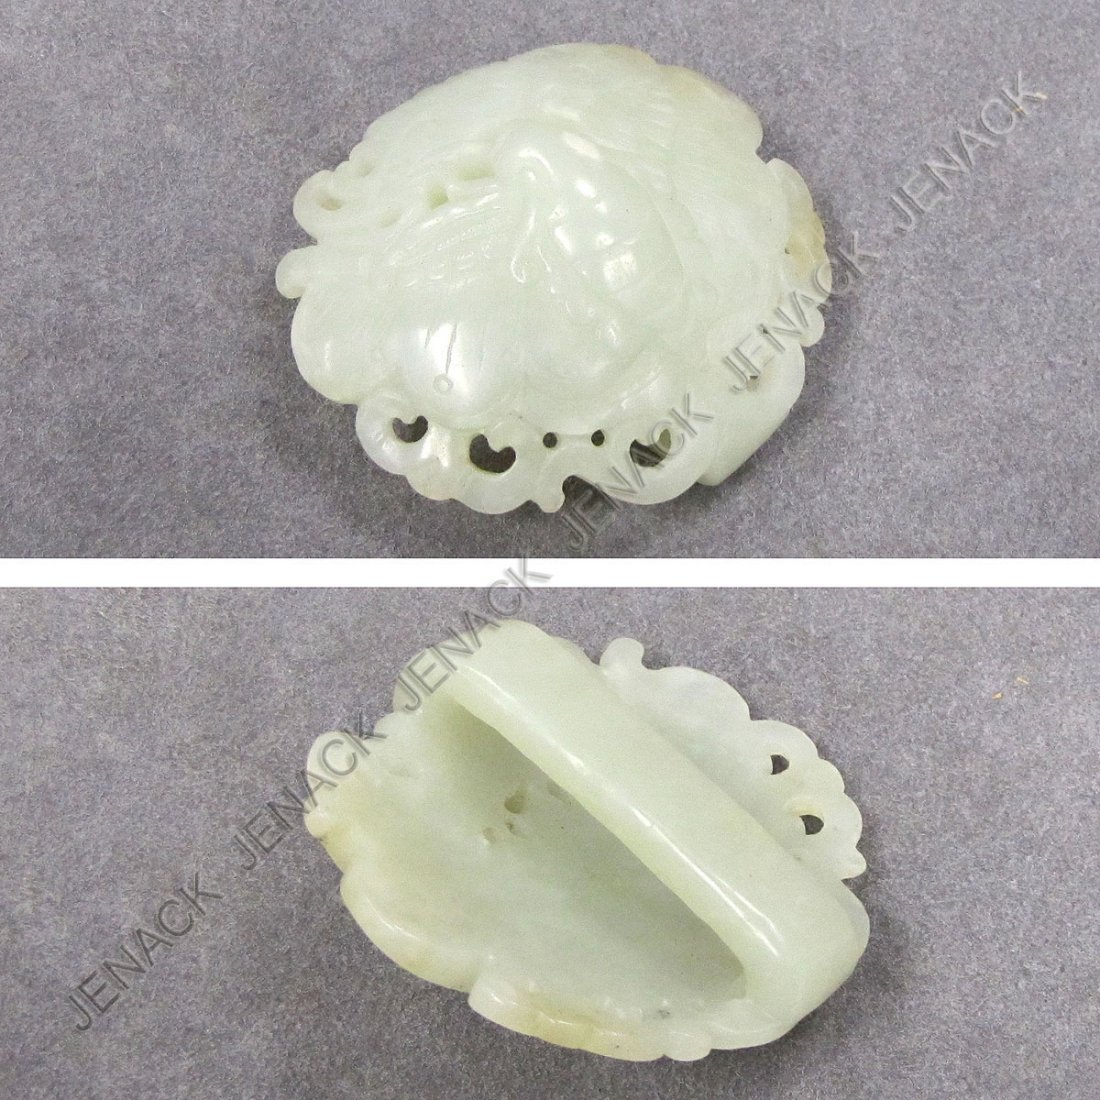 185: CHINESE CARVED WHITE JADE BUTTERFLY BELT BUCKLE